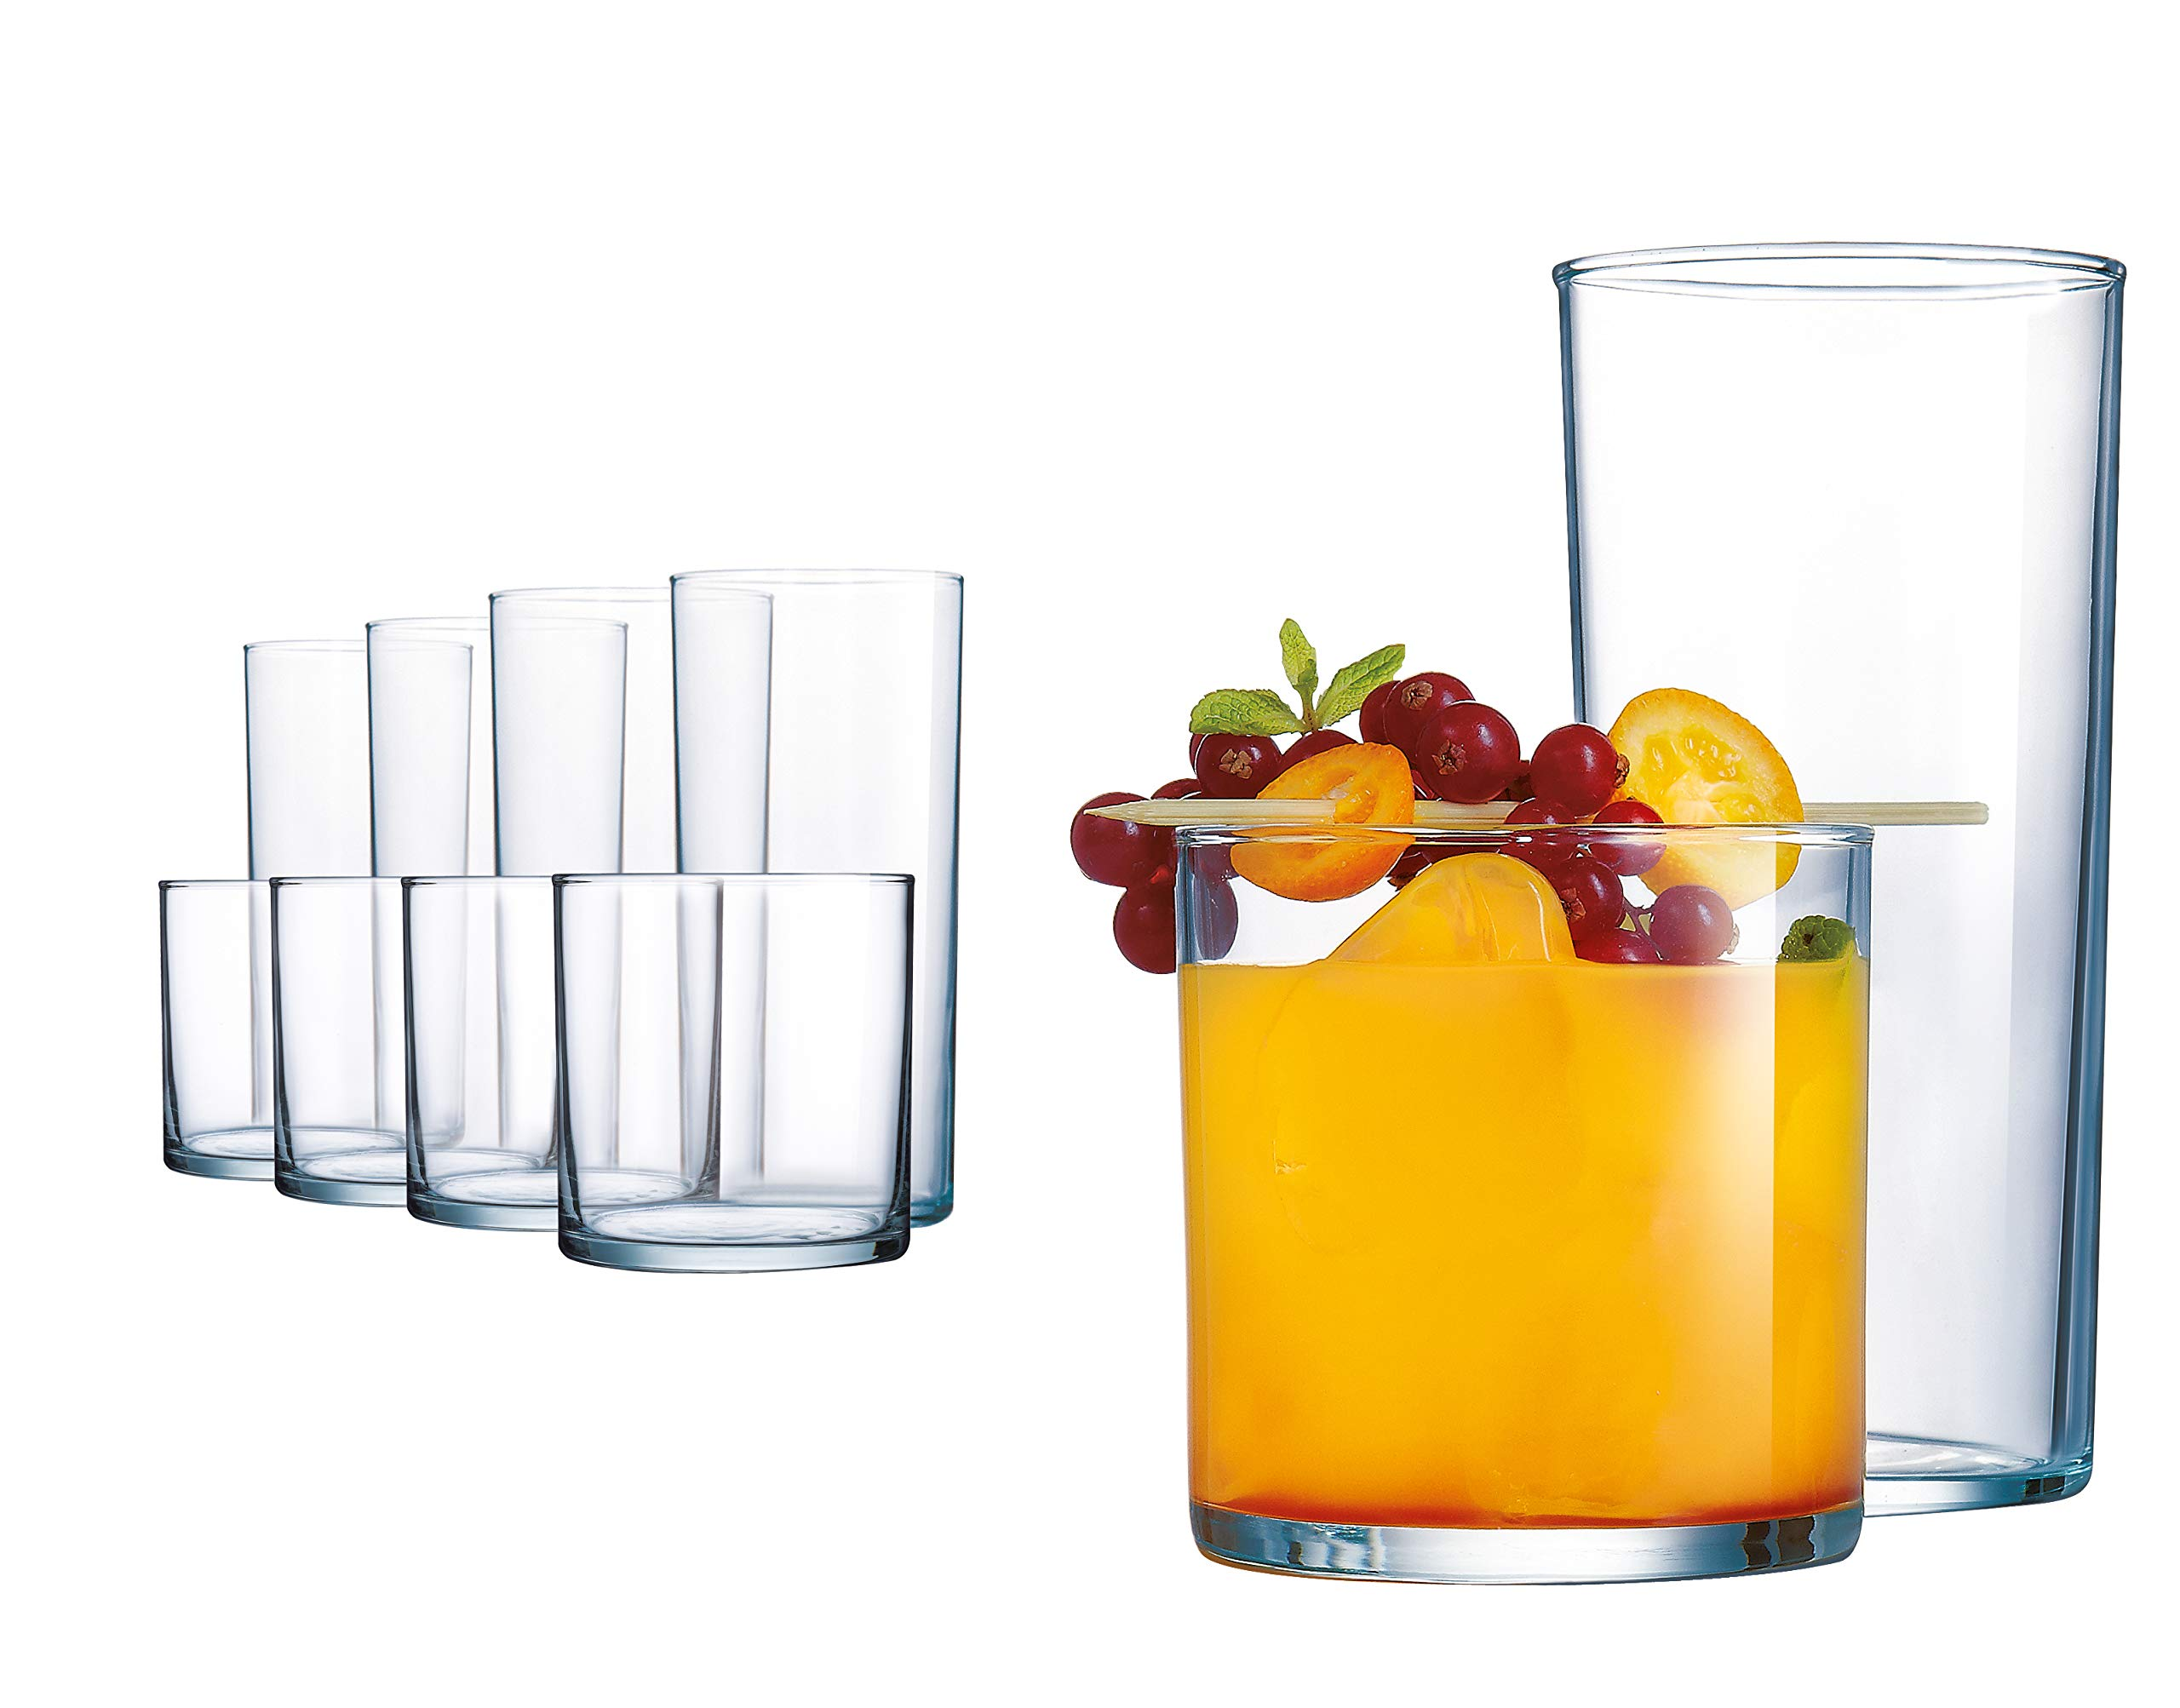 Elegant Drinking Glasses, 8 Highball Glasses (16oz) and 8 Rocks Glass (12oz), Set of 16 Durable Glass Cups - Lead-Free Clear Glassware Set by Le'raze